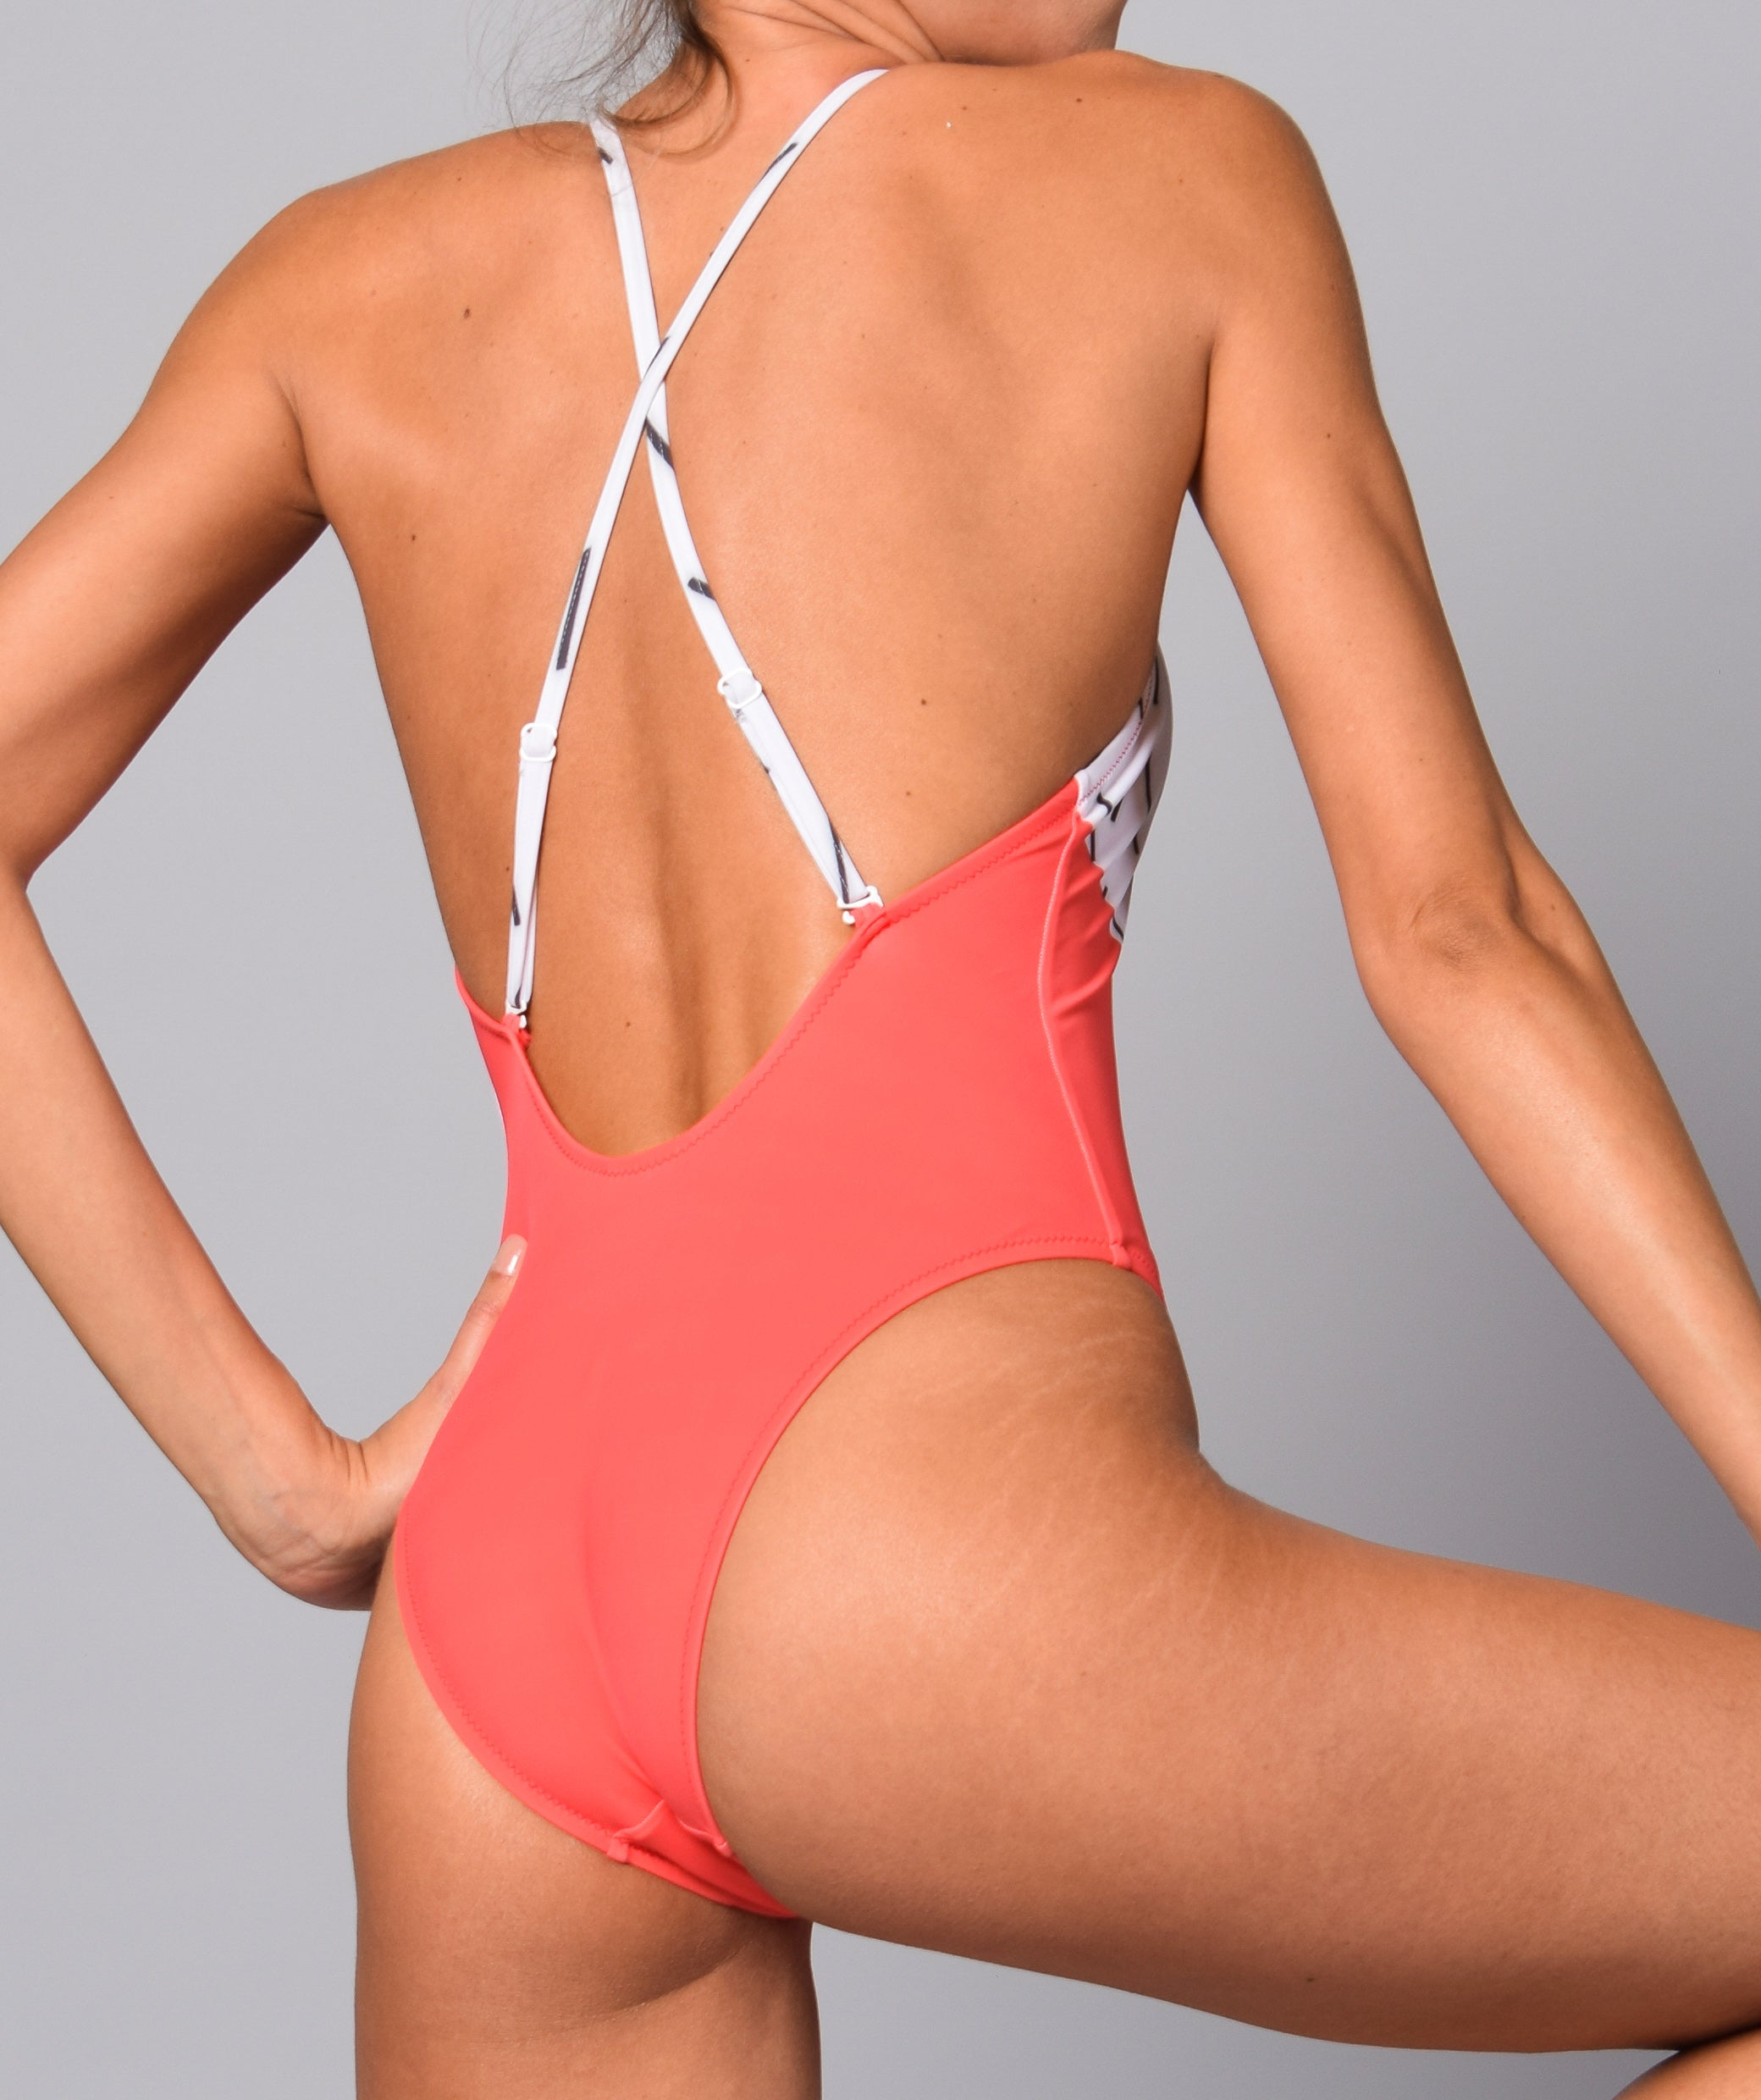 Boogaloo Girl wearing One-Piece Swimsuit Bici Cross Back - Back